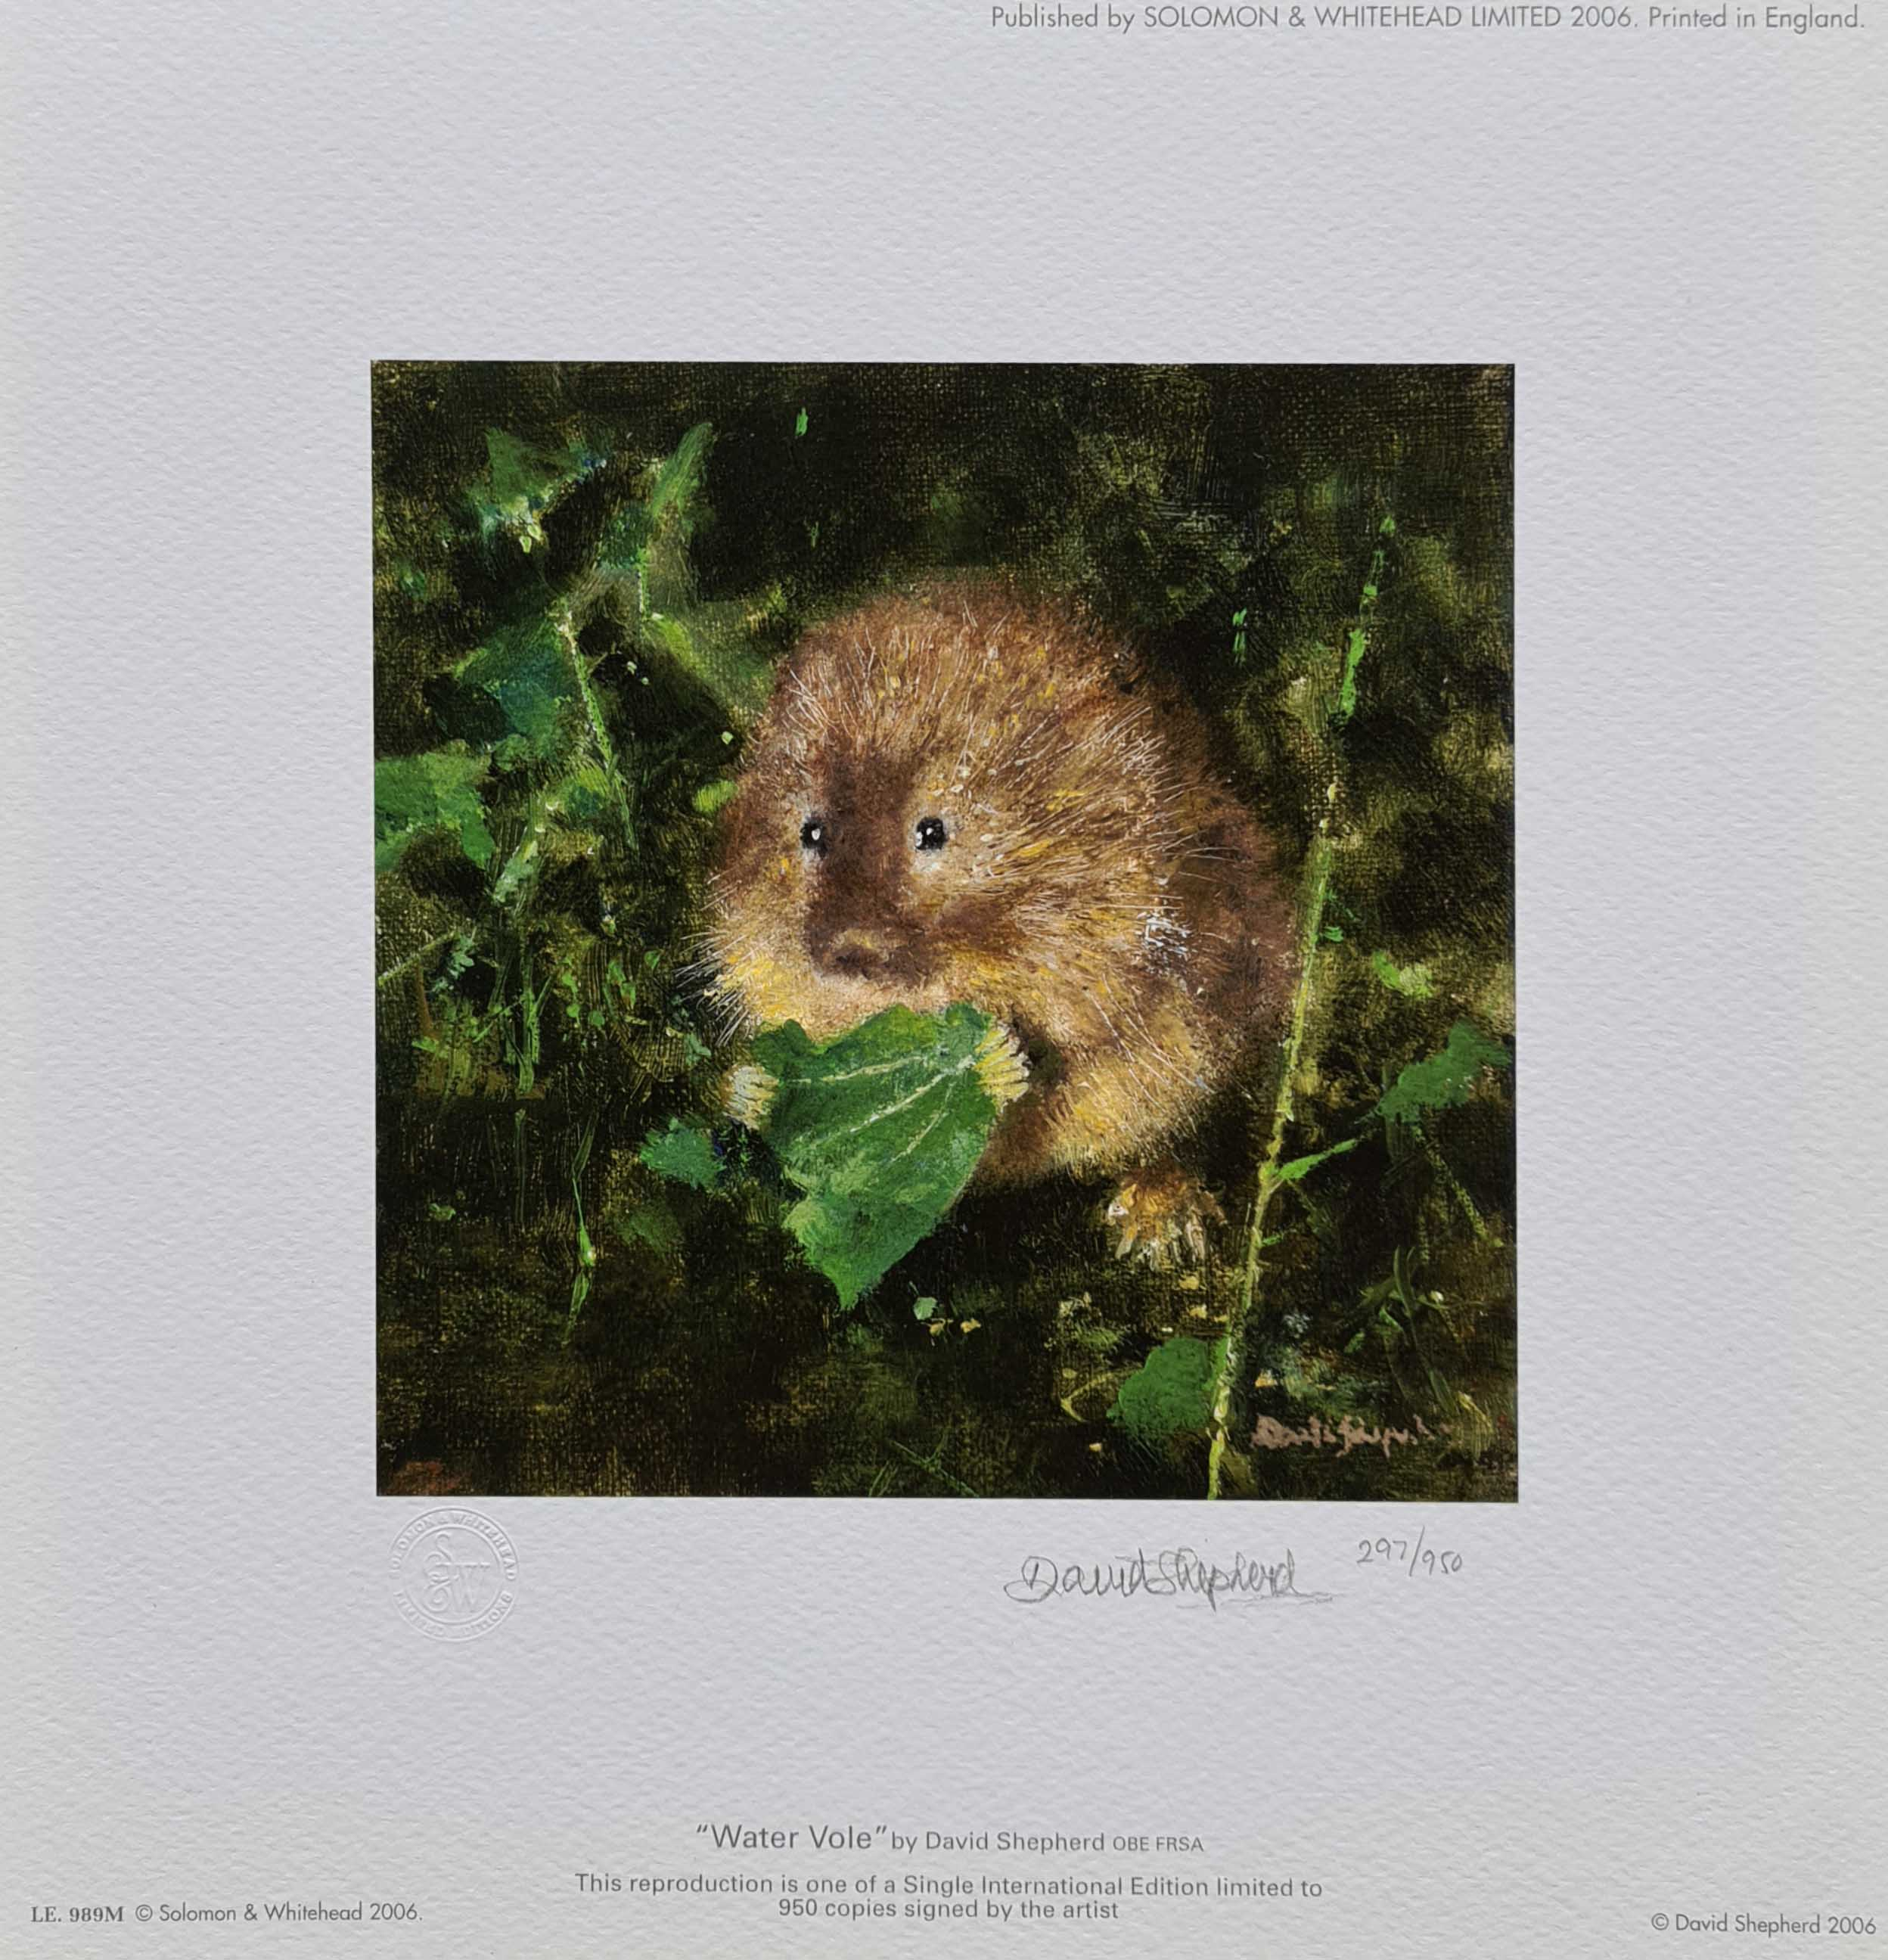 david shepherd, The water vole, print